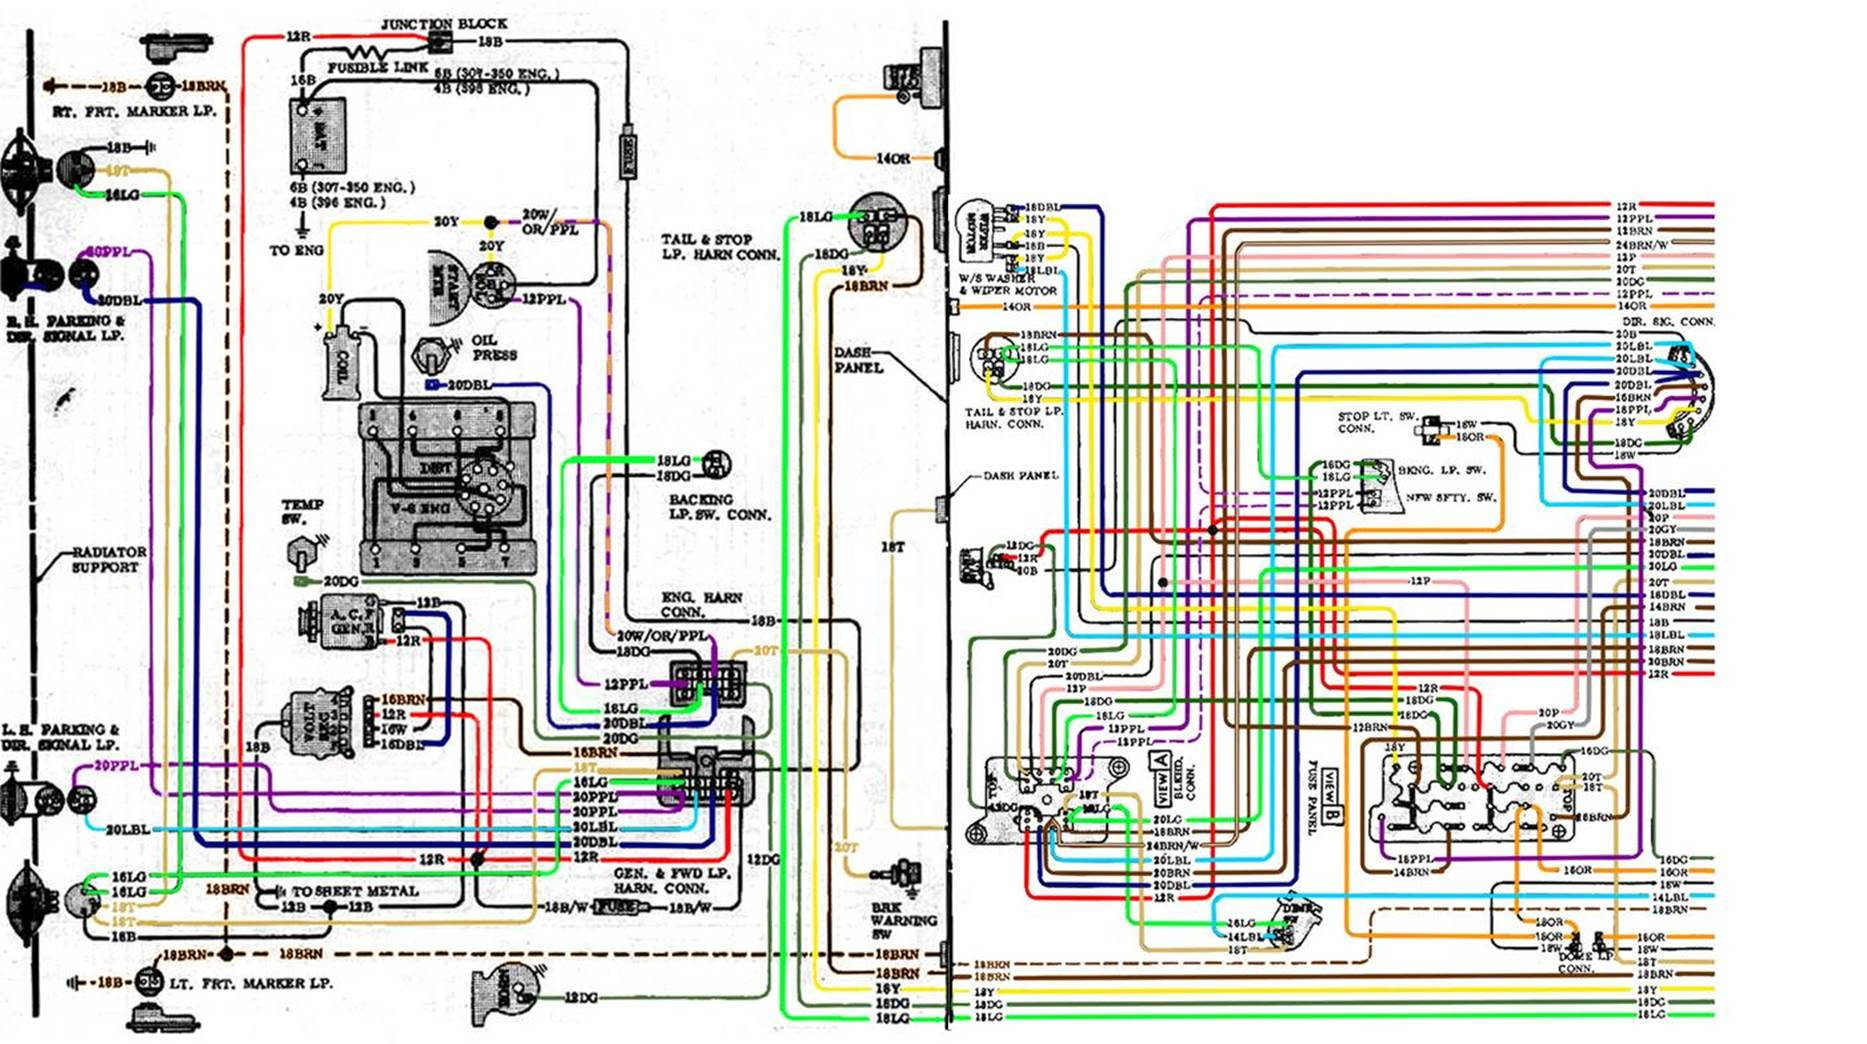 image002 67 72 chevy wiring diagram 1968 chevy wiring diagram at crackthecode.co